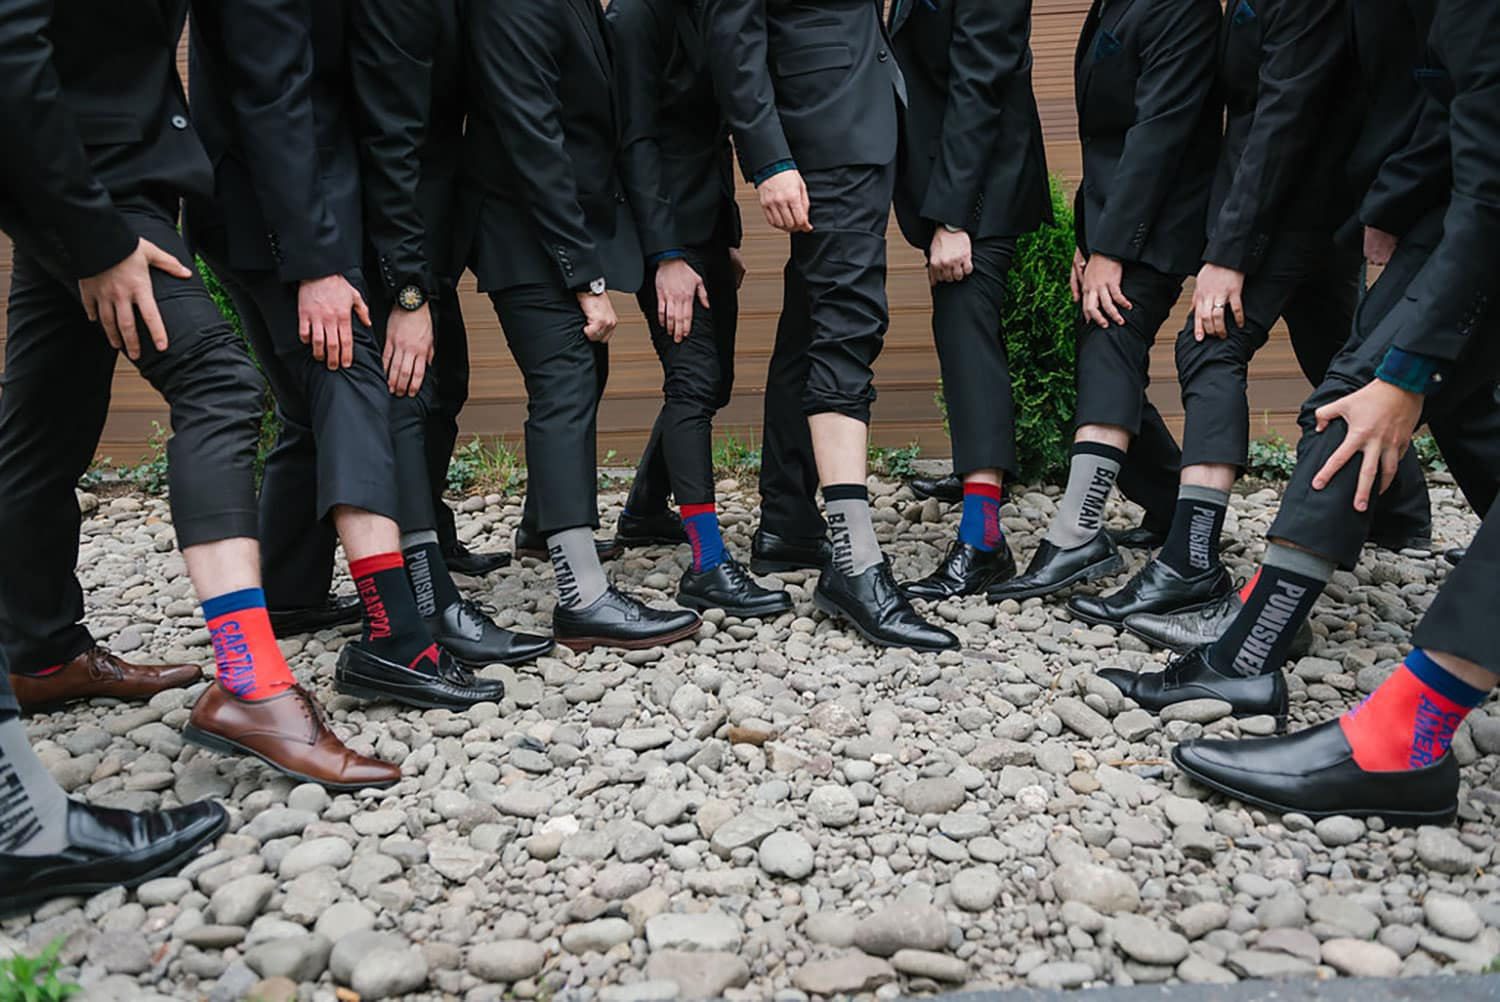 groomsmen-groom-fun-wedding-fashion-socks